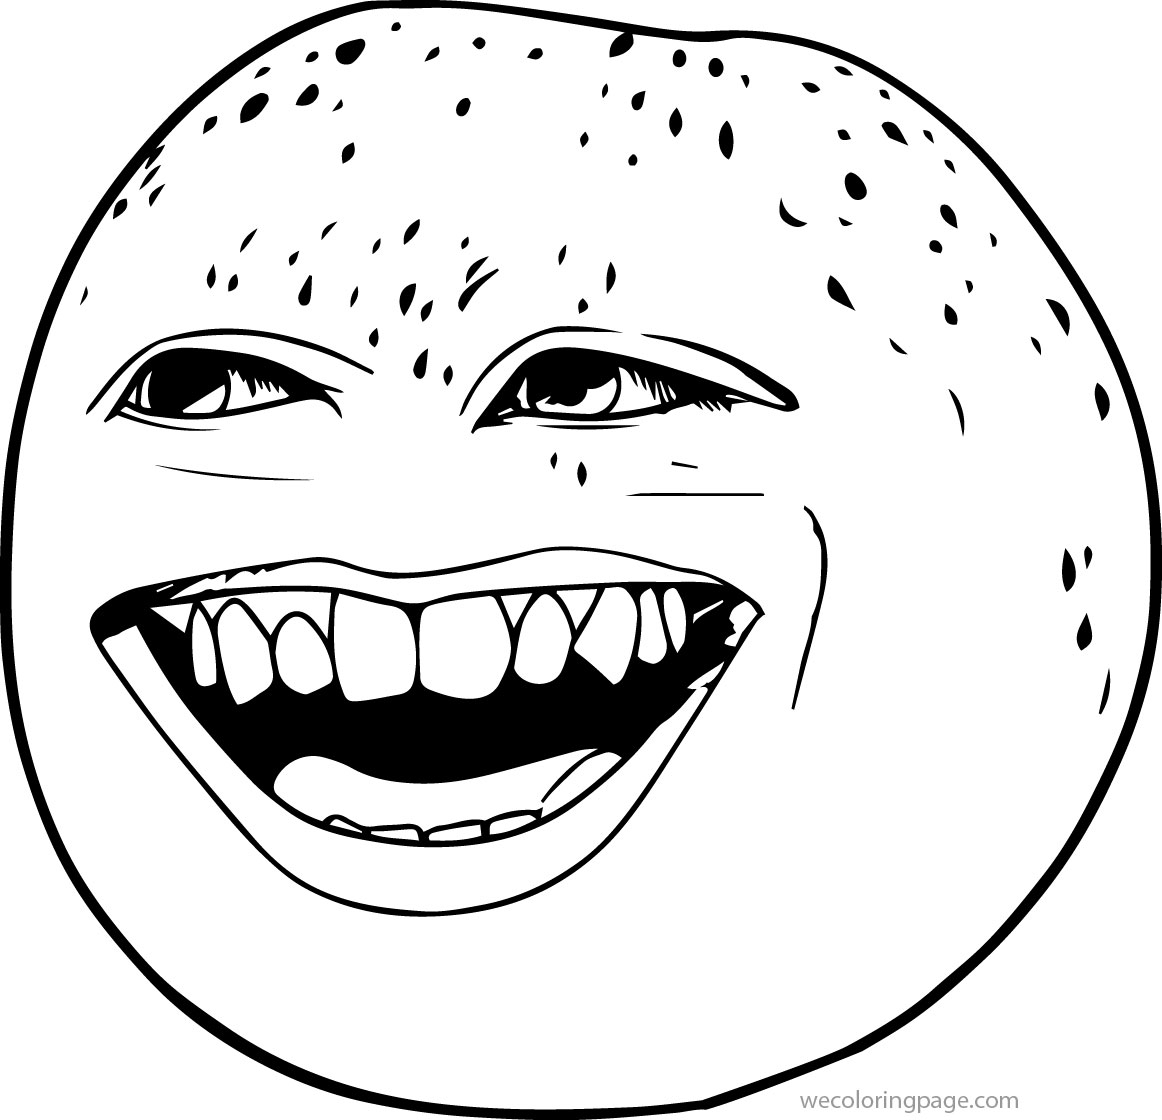 Orange Coloring Page Laugh The Annoying Orange Coloring Page Wecoloringpage